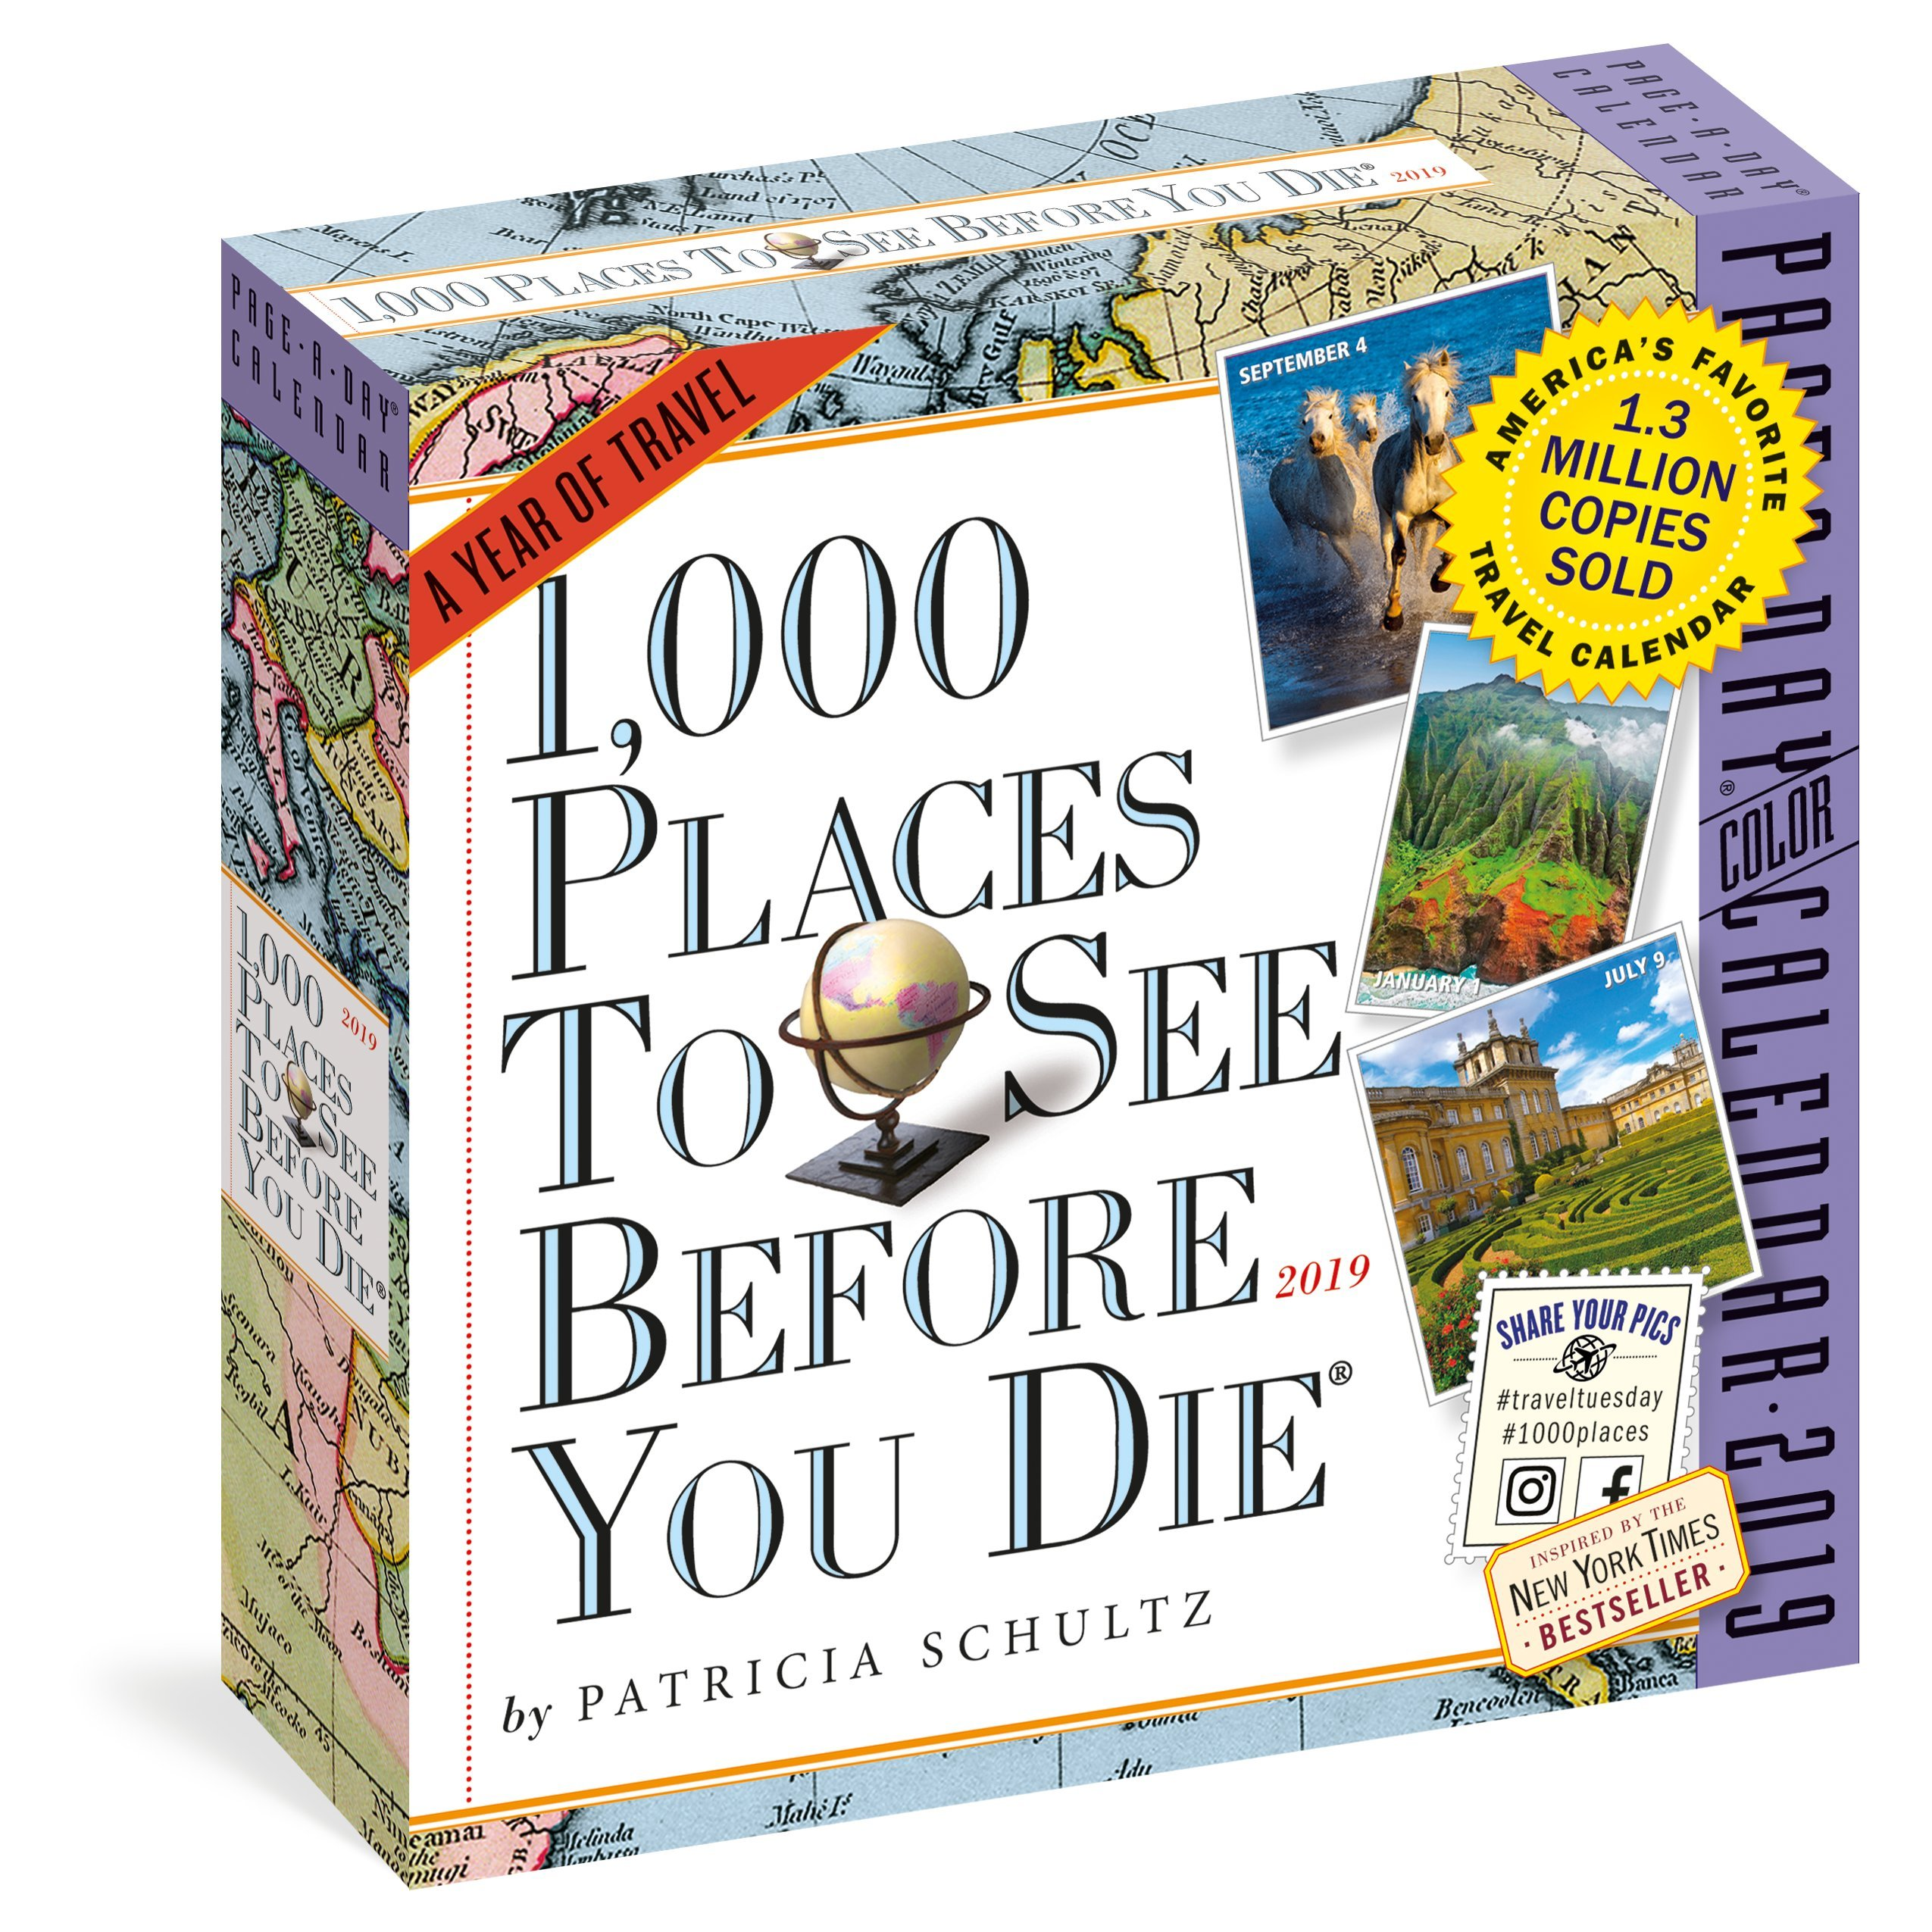 1000 Places to See Before You Die Page-A-Day Calendar 2019 Calendar – Day to Day Calendar, 1 Aug 2018 Patricia Schultz Workman Publishing 1523503513 Address Books